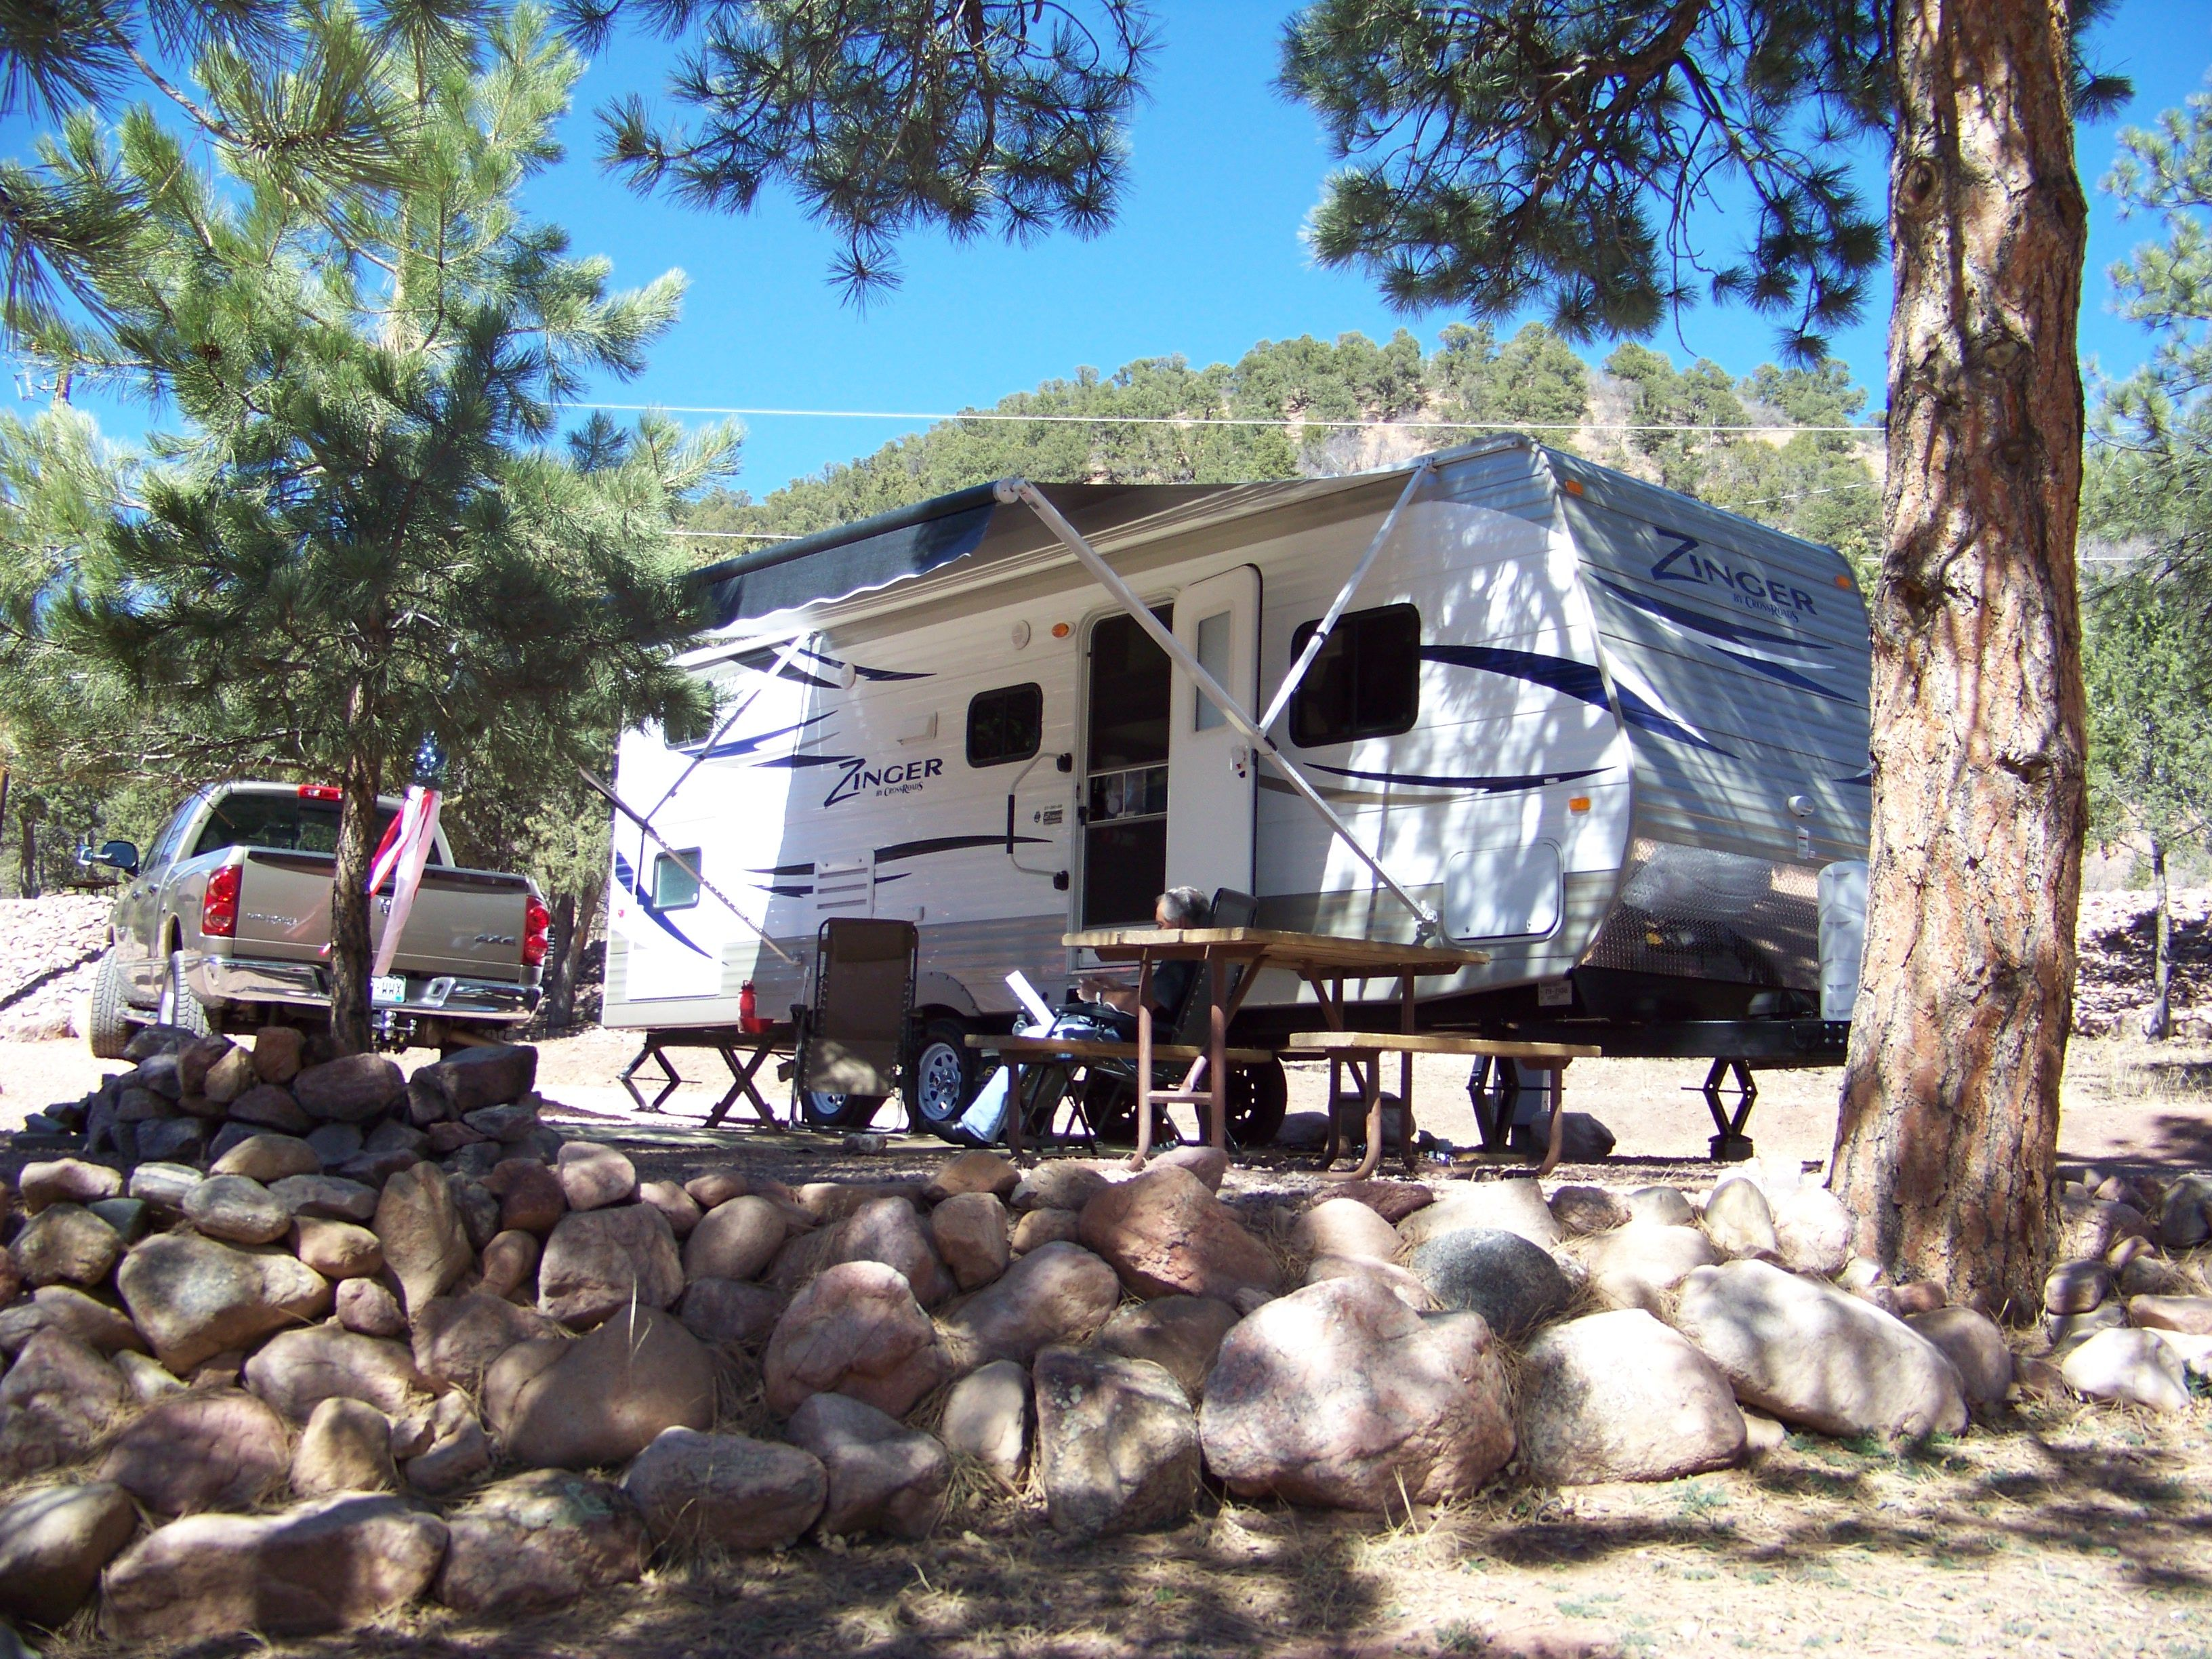 Camping At Mountaindale Cabins And RV Park, Colorado Springs, CO